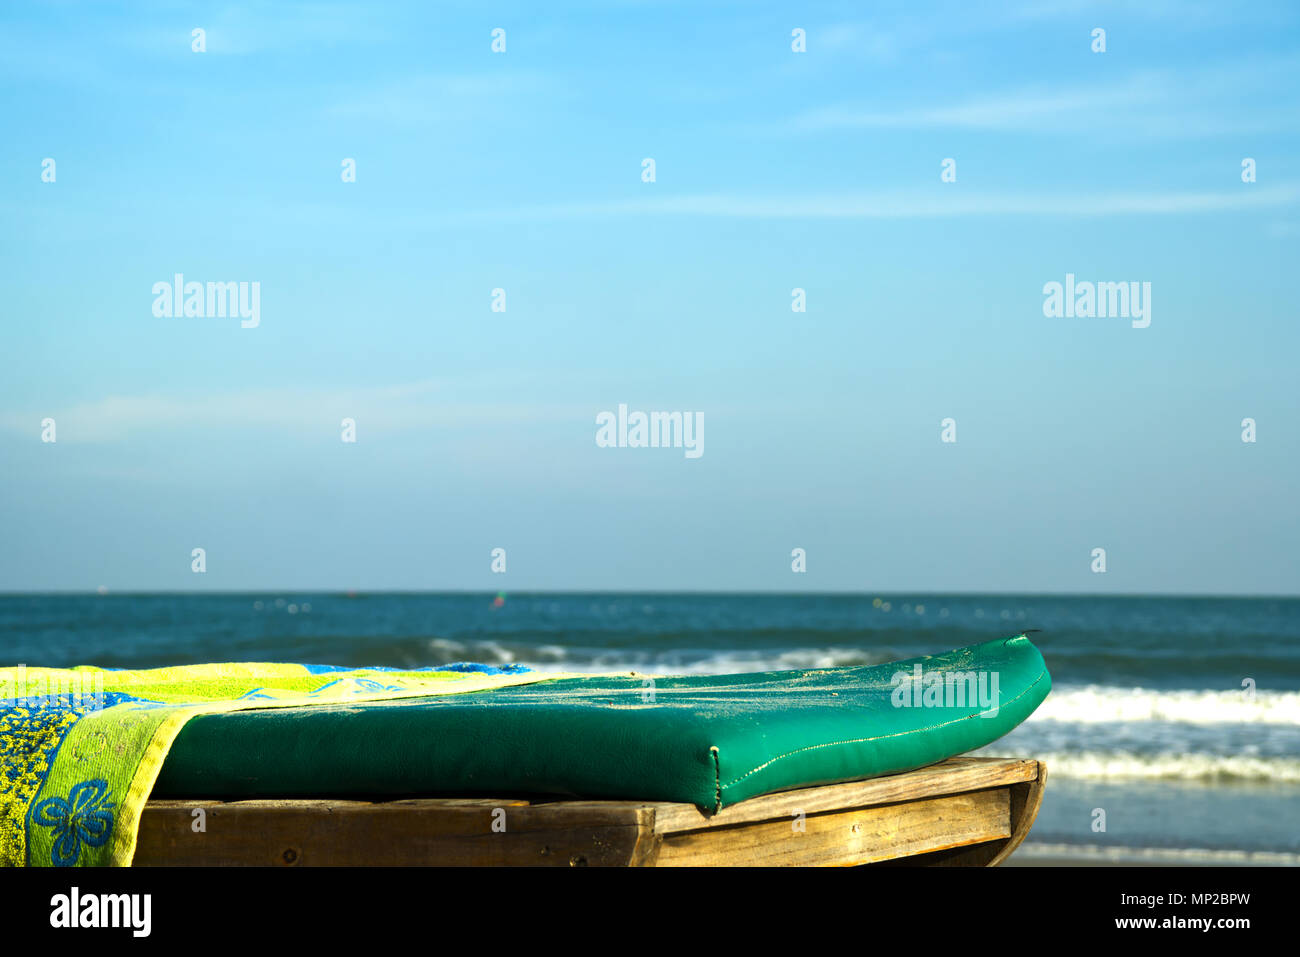 Sunbed on the beach - Stock Image